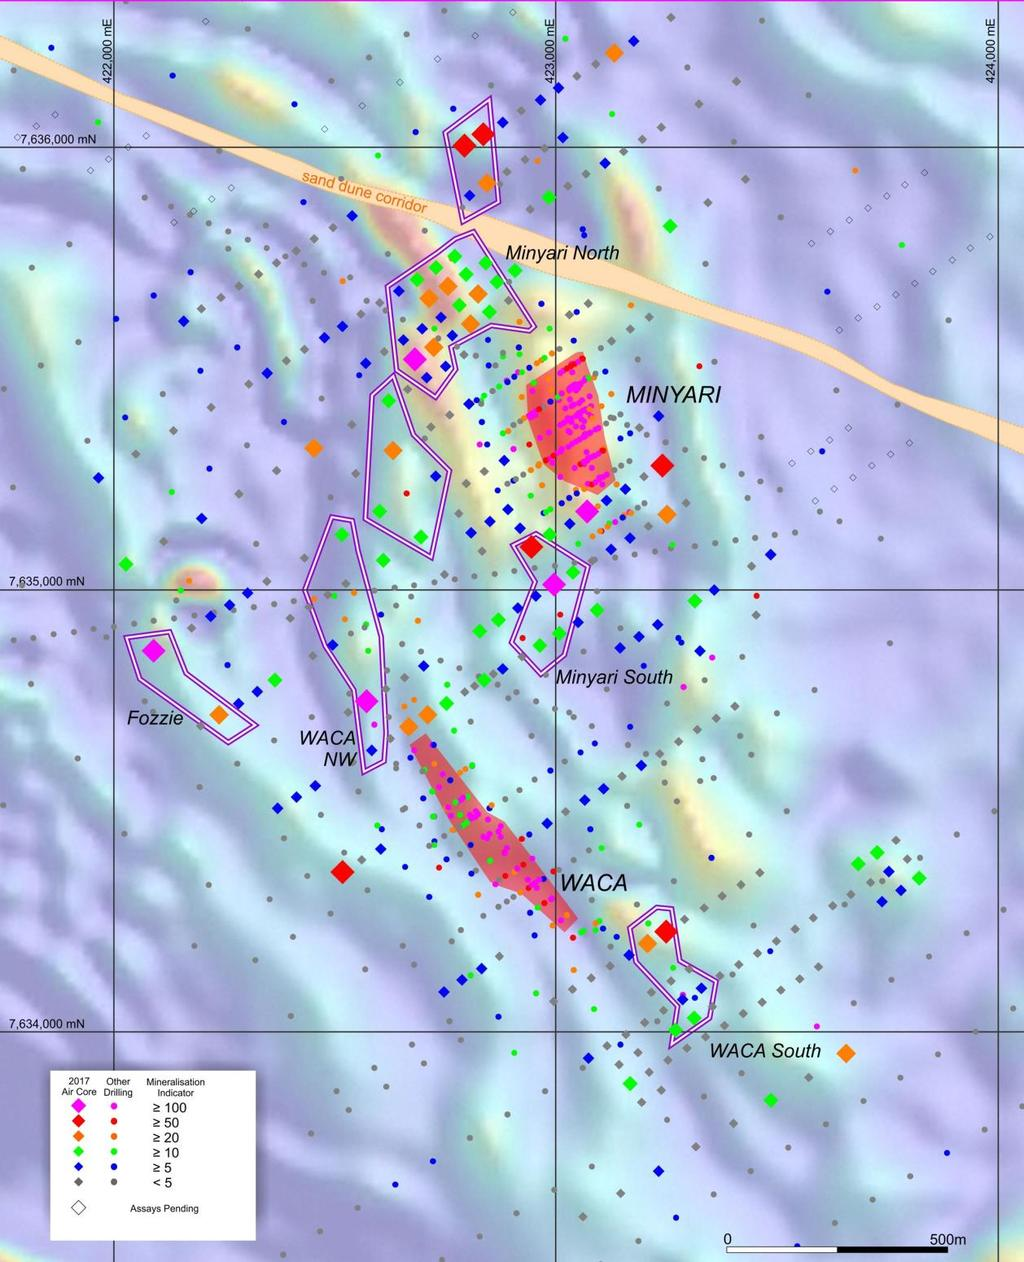 Figure 3: Plan view of the southern region of the Minyari Dome showing prospect, deposit and target locations, and drill holes annotated by Mineralisation Indicator (i.e. Au ppm x 100 + Ag ppm x 10 + Bi ppm + Cu ppm/100 + Co ppm/100 + As ppm/100) maximum value within 60m of surface.